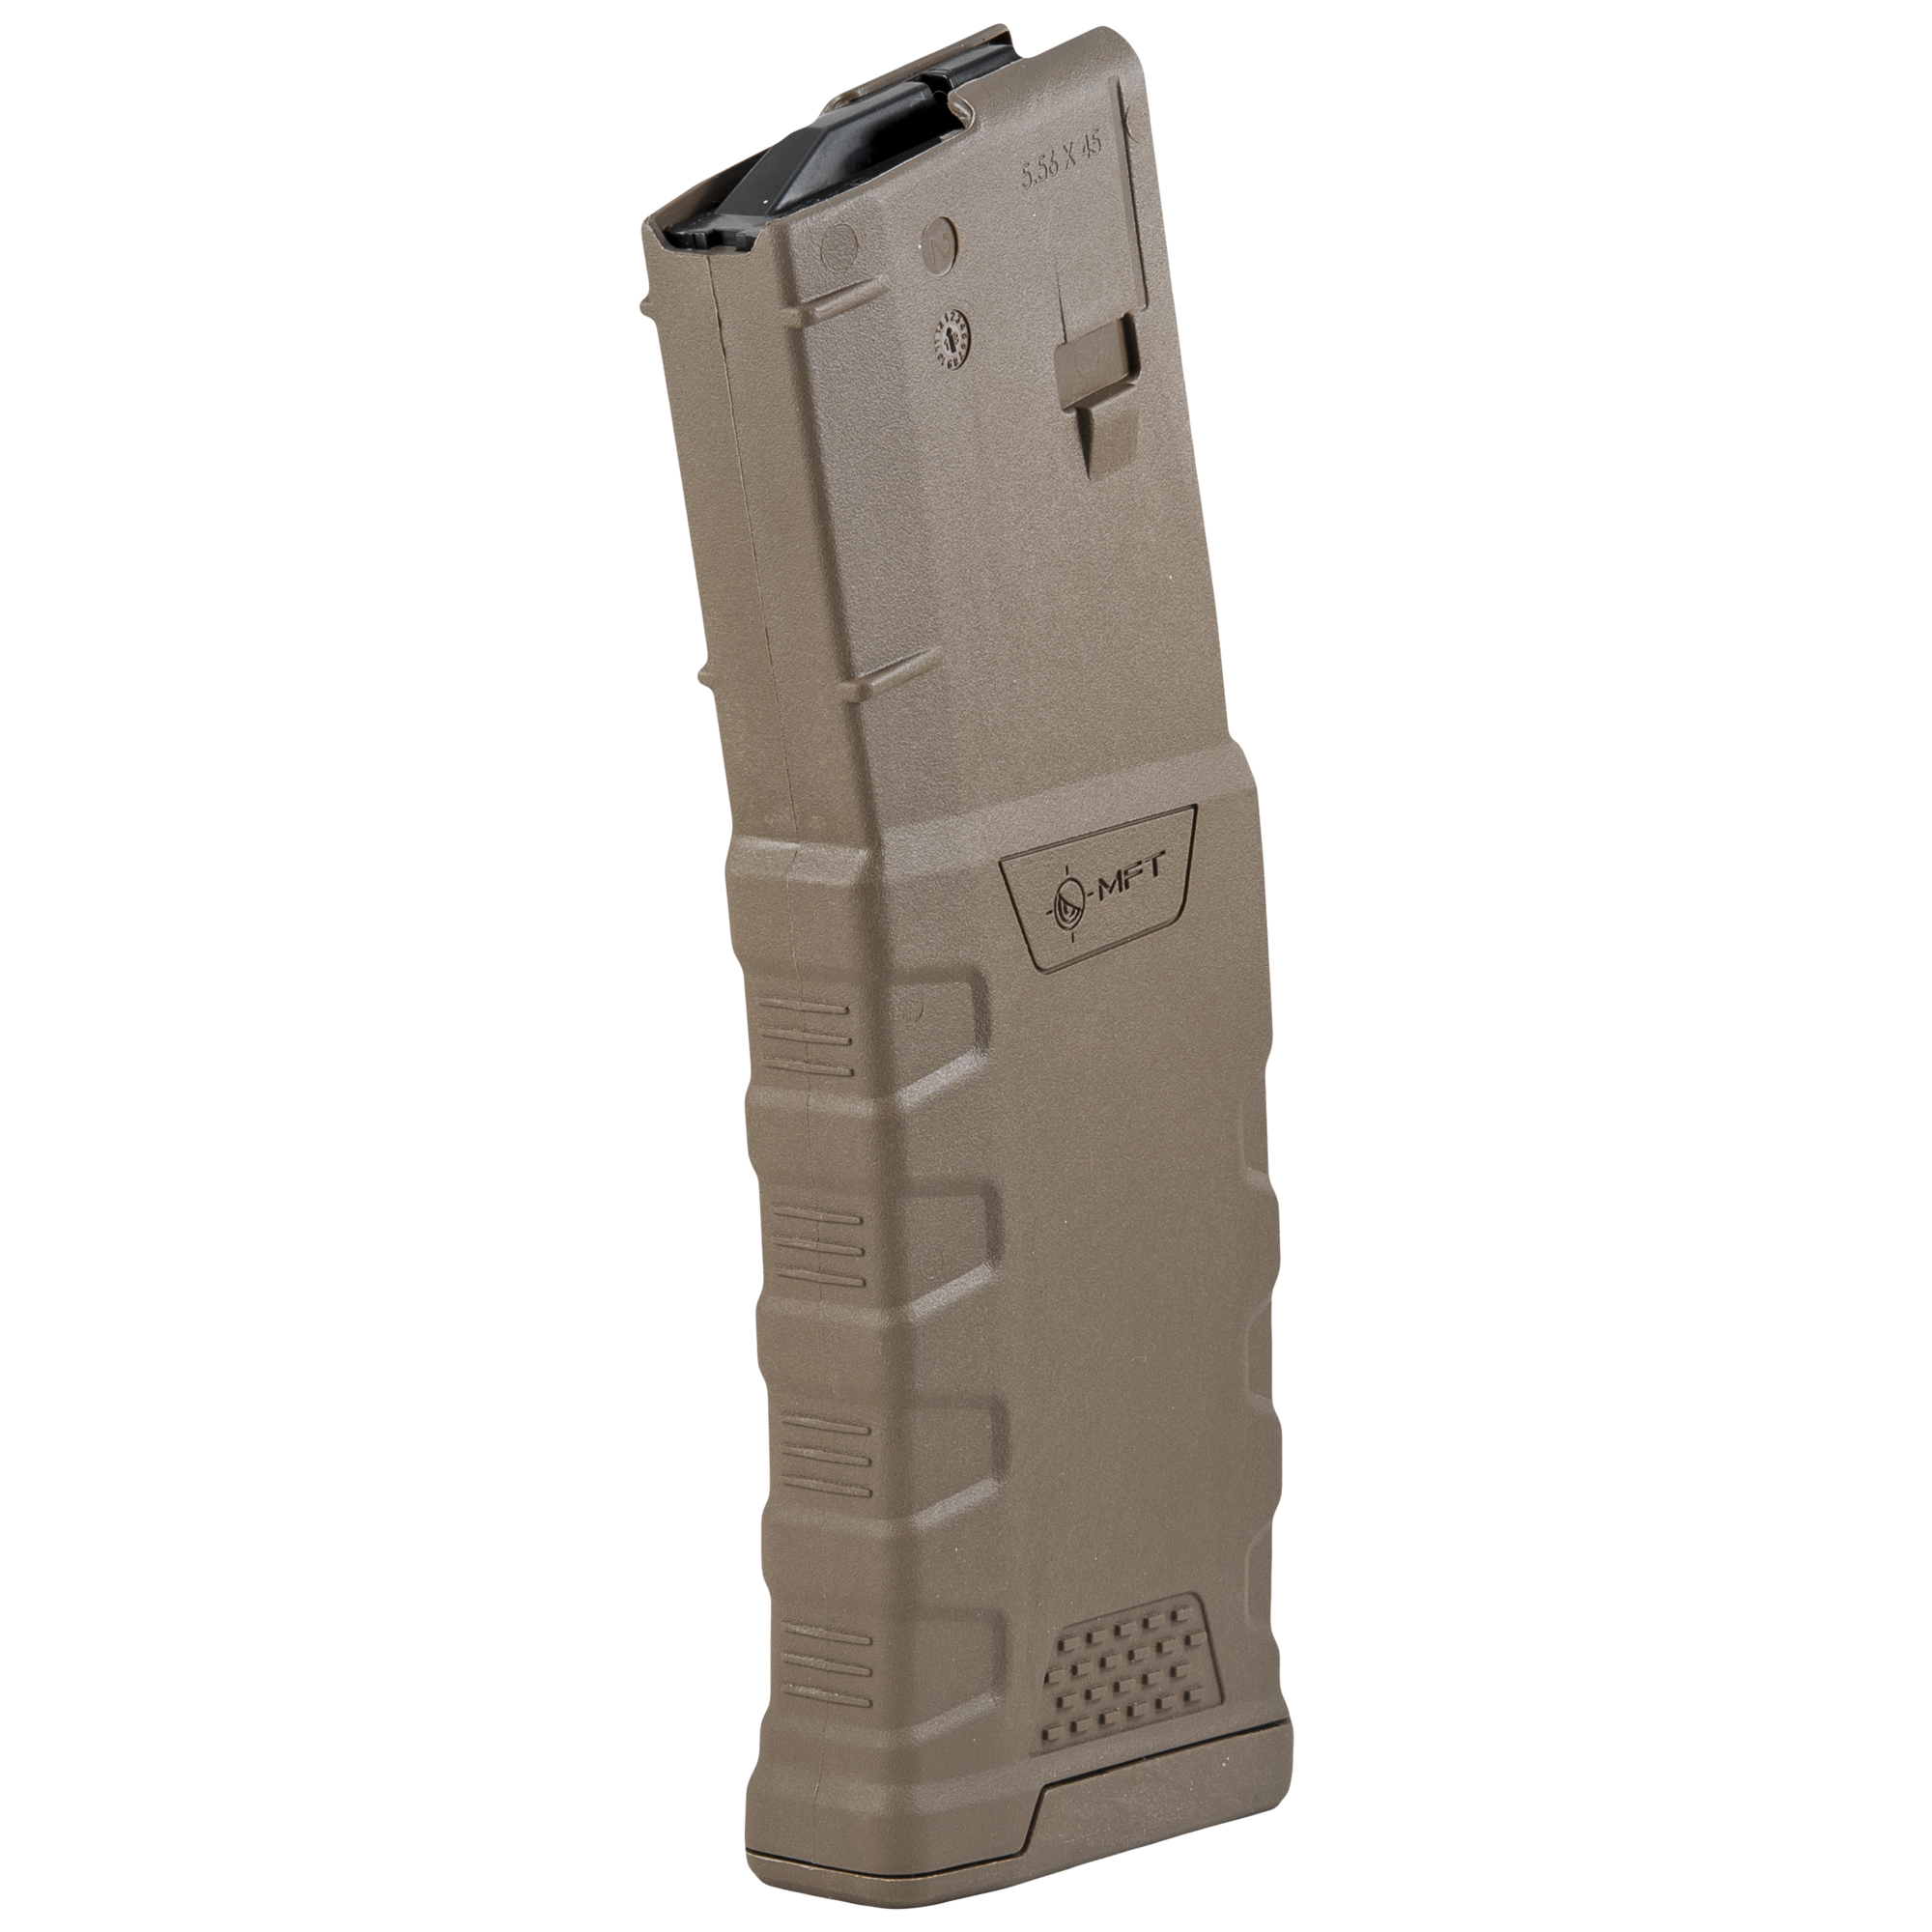 """This magazine utilizes new material technology and manufacturing processes for enhanced strength"""" durability"""" and reliability to exceed demanding military performance specifications. It is designed for the AR15/M4 but is compatible with a wide range of non-AR15/M4 platforms."""